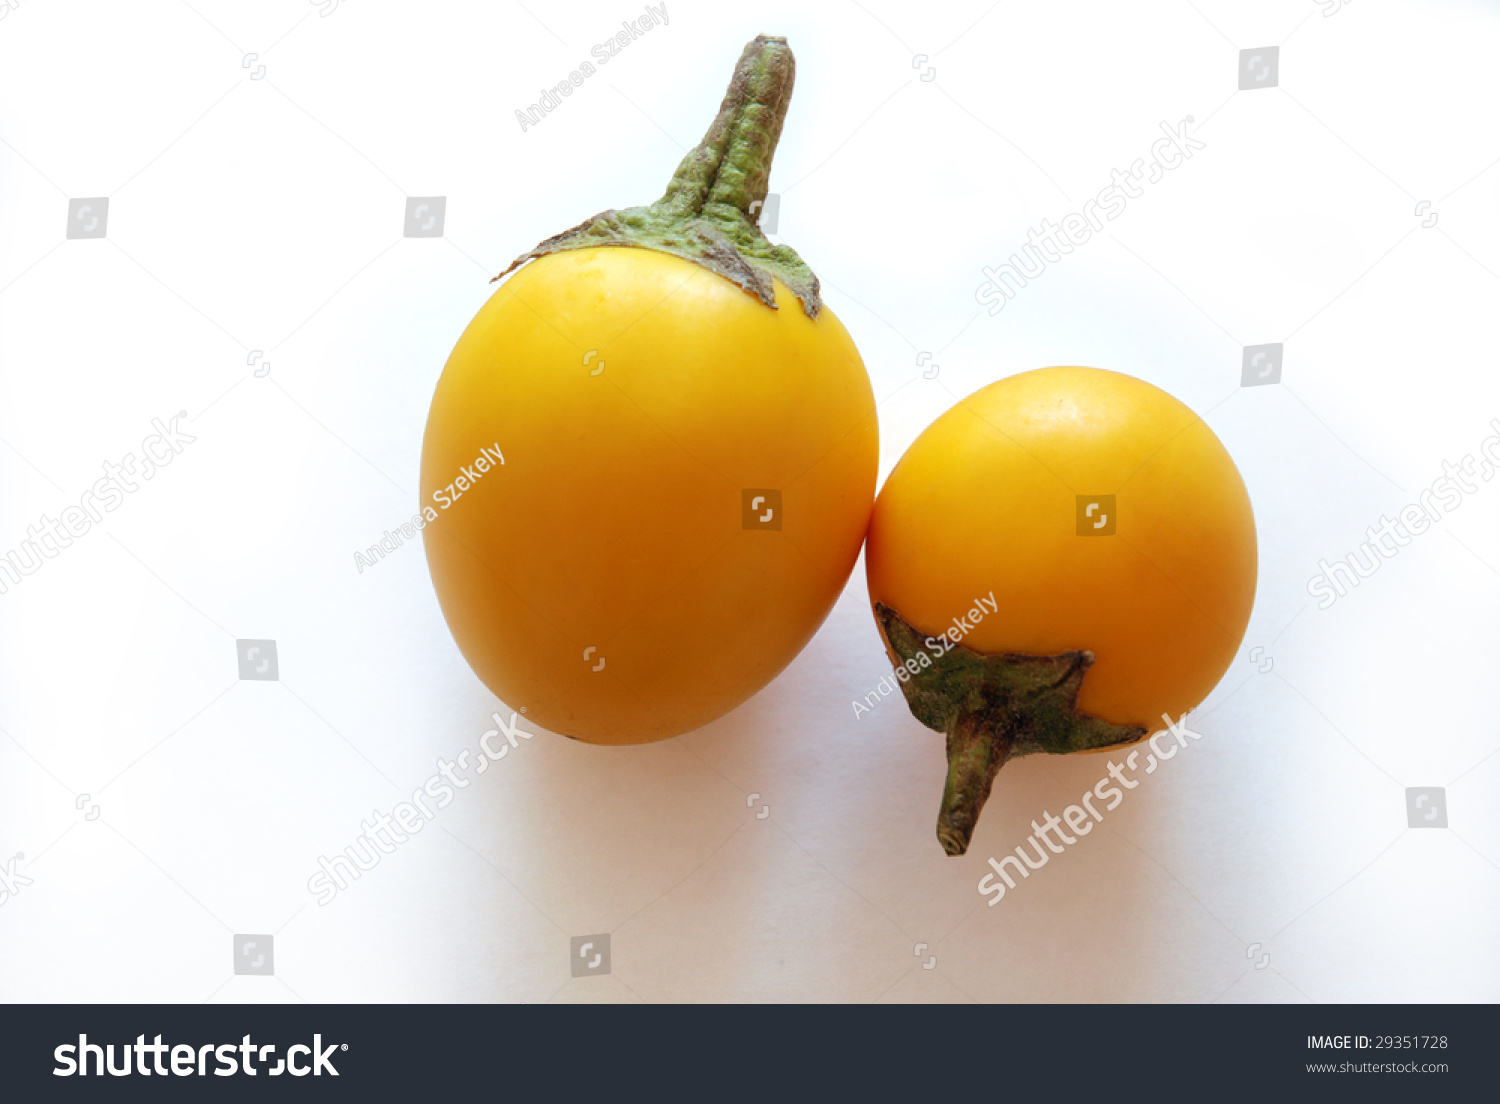 yellow fruits is eggplant a fruit